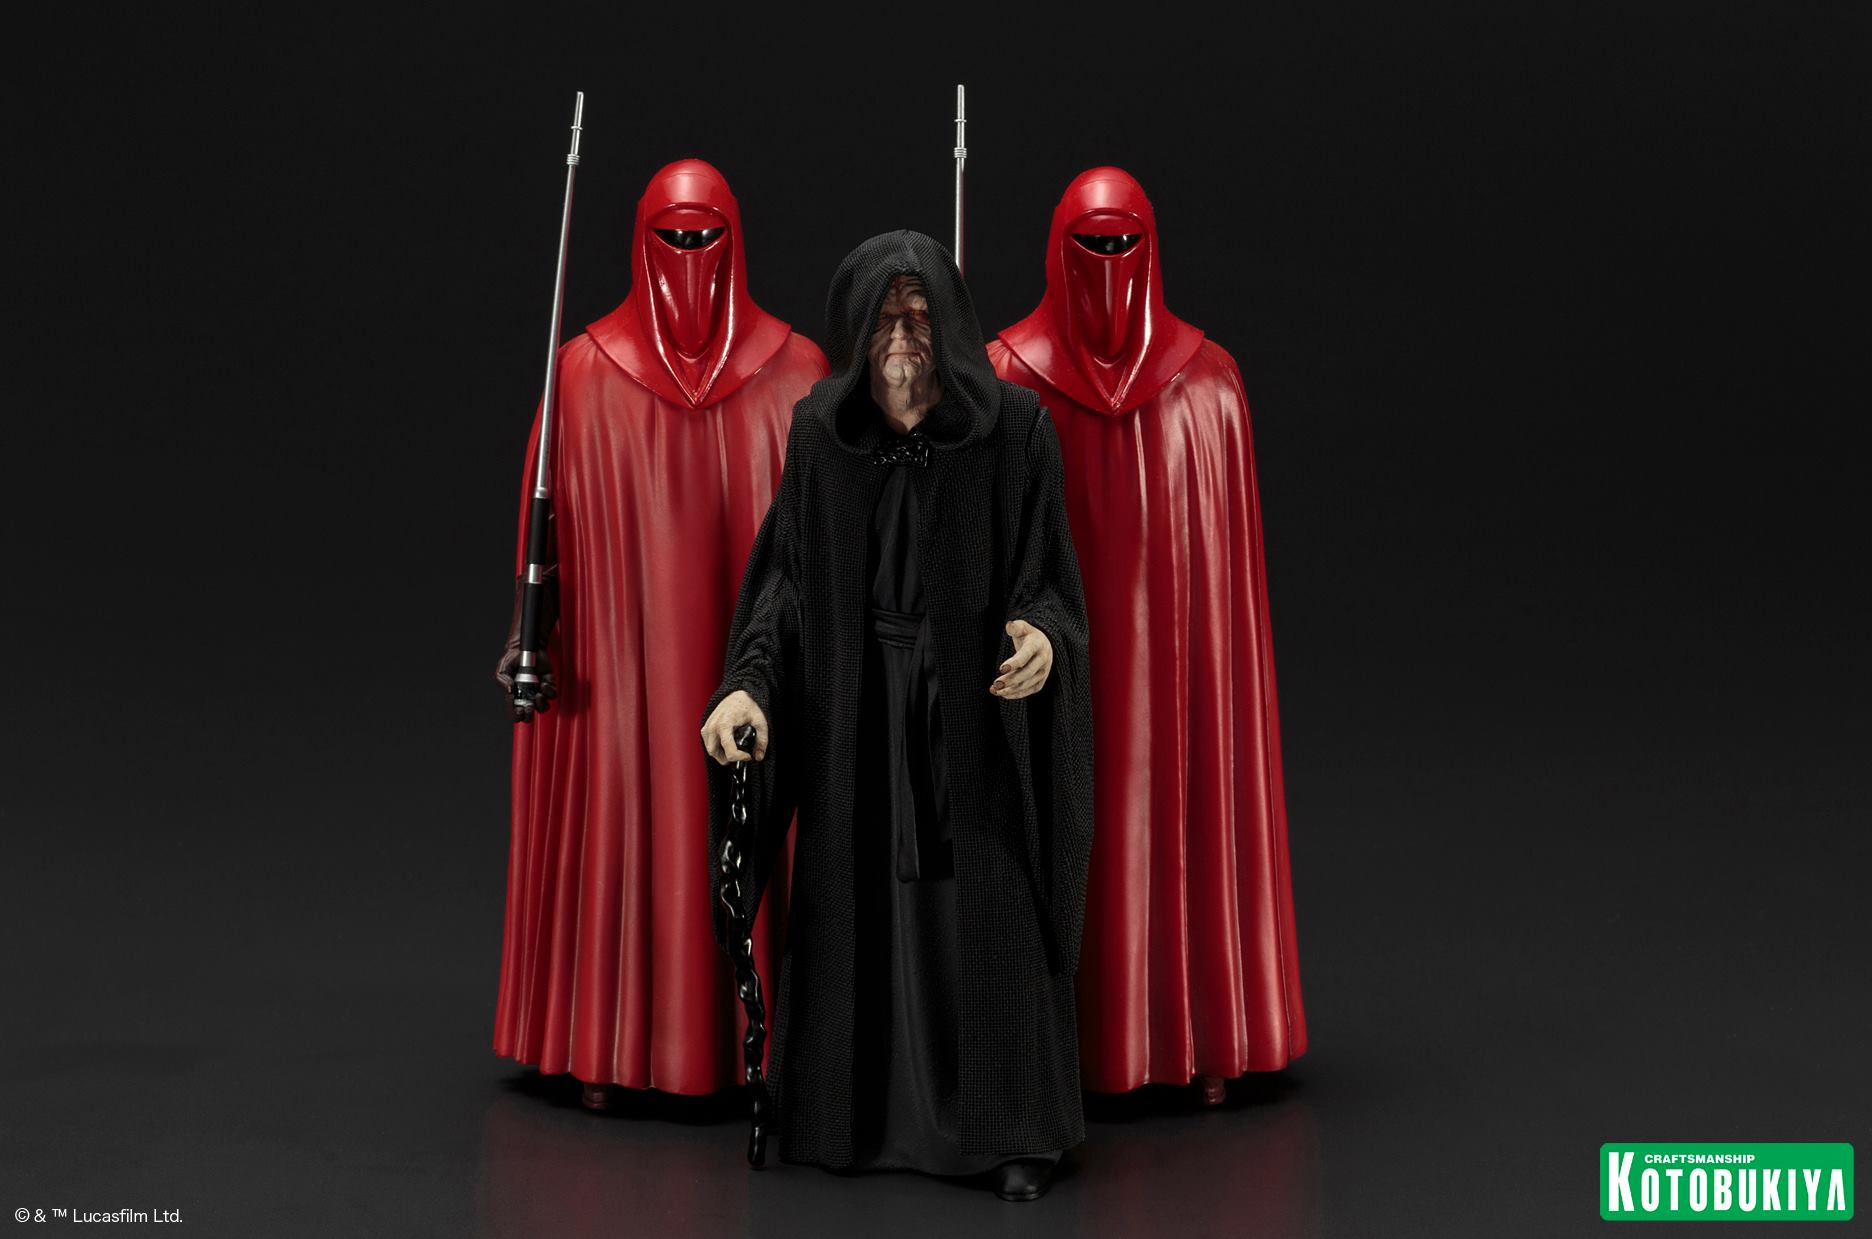 Kotobukiya - ARTFX+ - Star Wars - Emperor Palpatine with Royal Guards 3-Pack